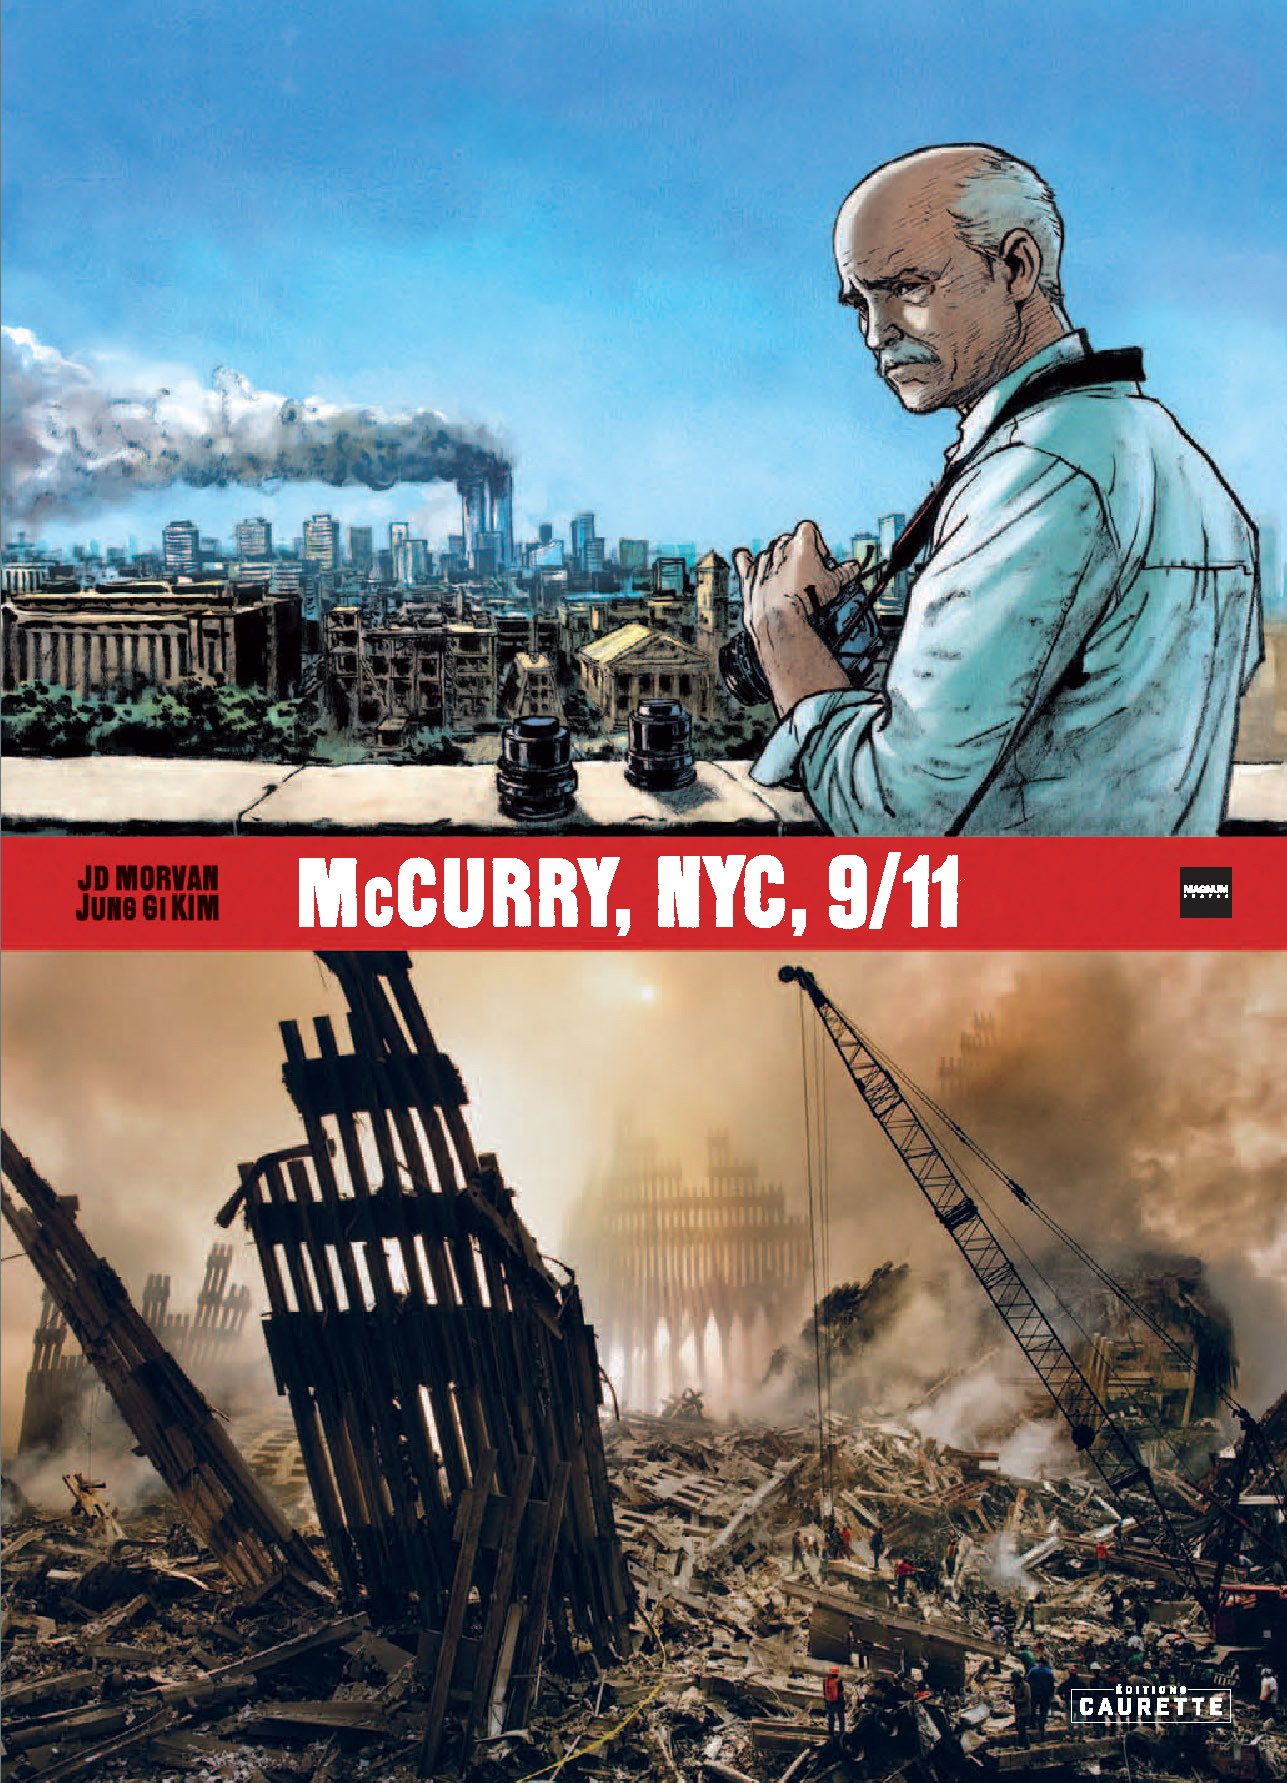 MC CURRY, NYC, 9/11 - ENGLISH-